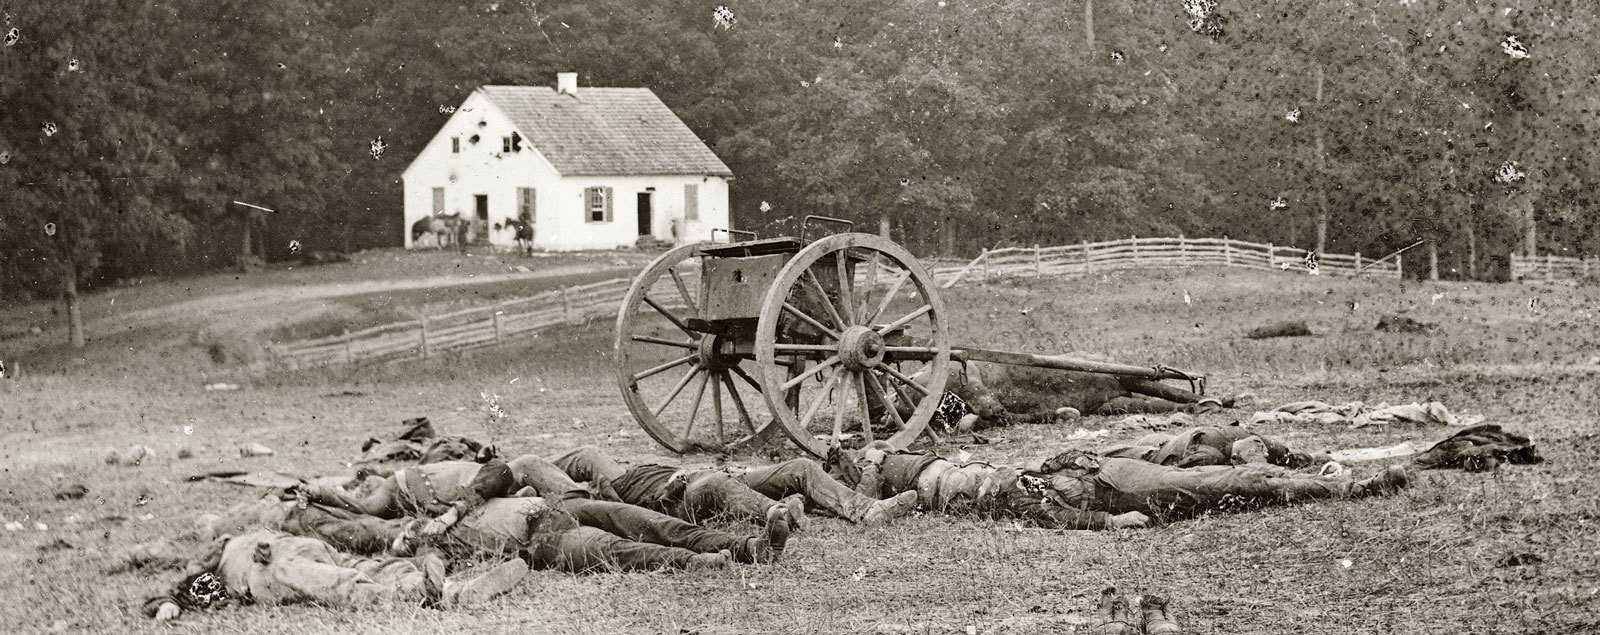 an overview of the battle of the antietam Battle of the antietam summary conveys the placement of union and confederate forces in washington county, md, around sharpsburg during the battle of antietam on september 17, 1862.